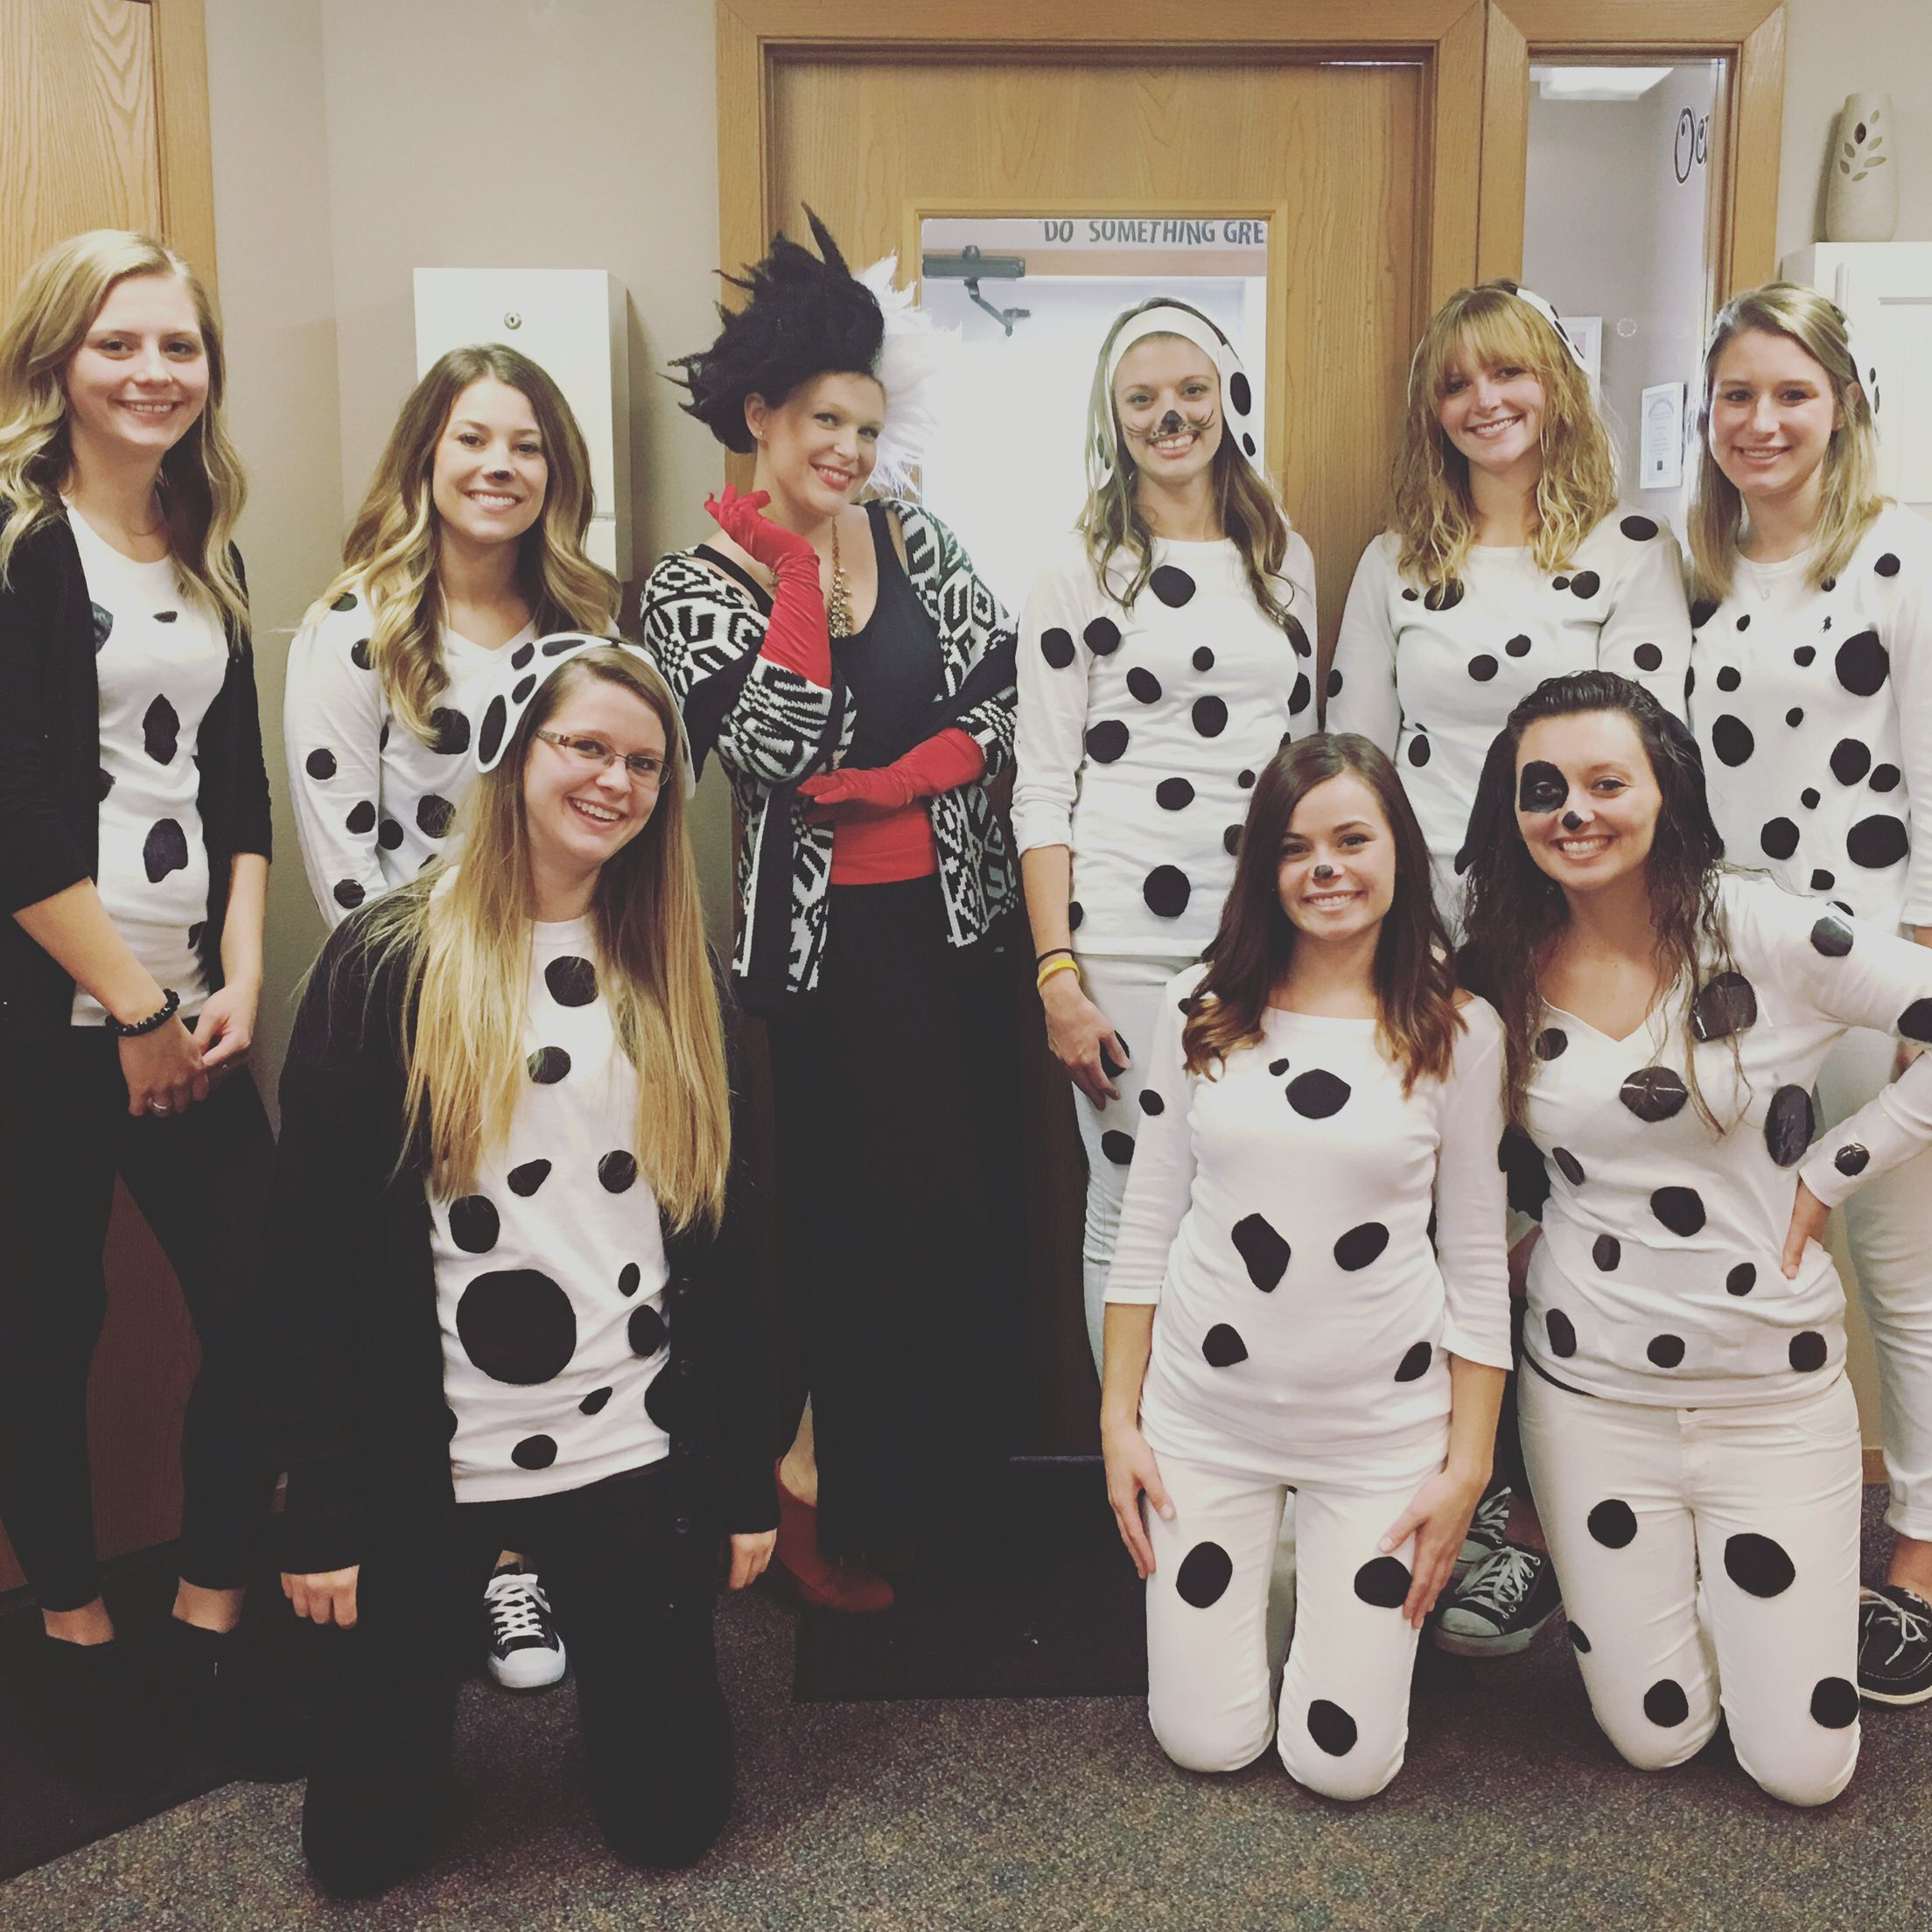 Halloween Group Costume Ideas 2018.101 Dalmation Group Costume Holidays Events Group